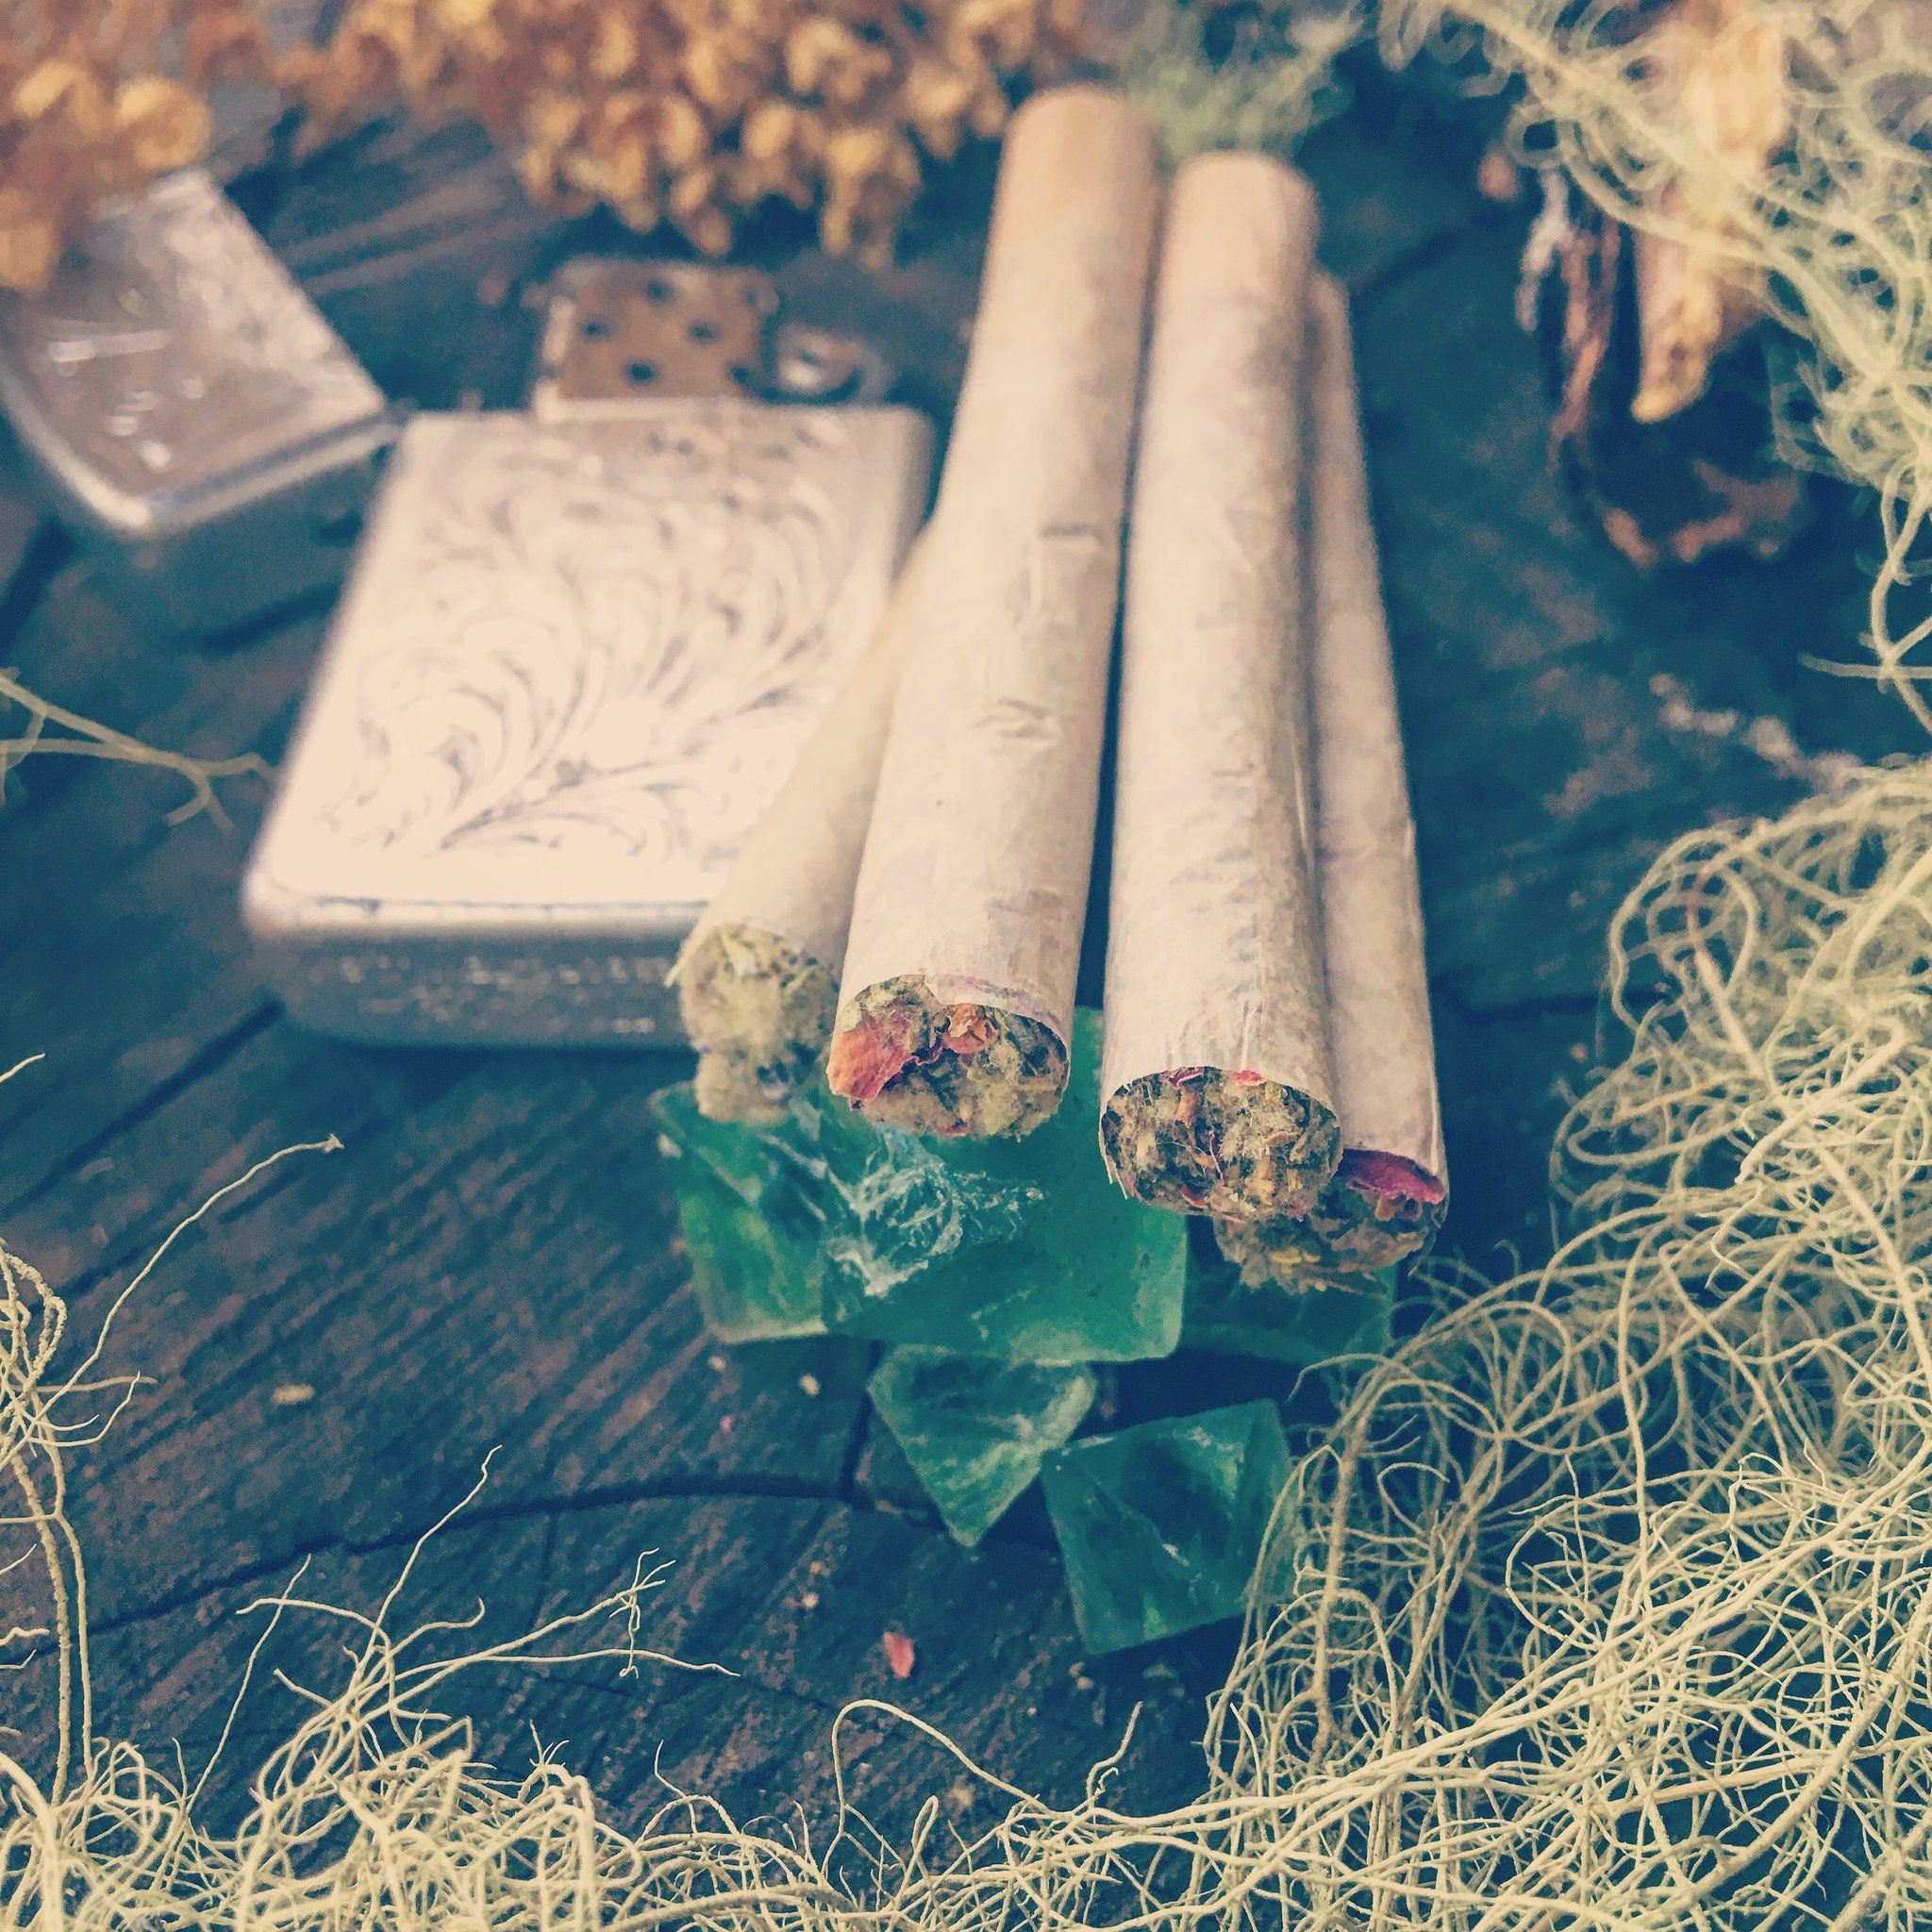 Aphrodite Herbal Pre-roll Cigarettes #witch #handmade #diy